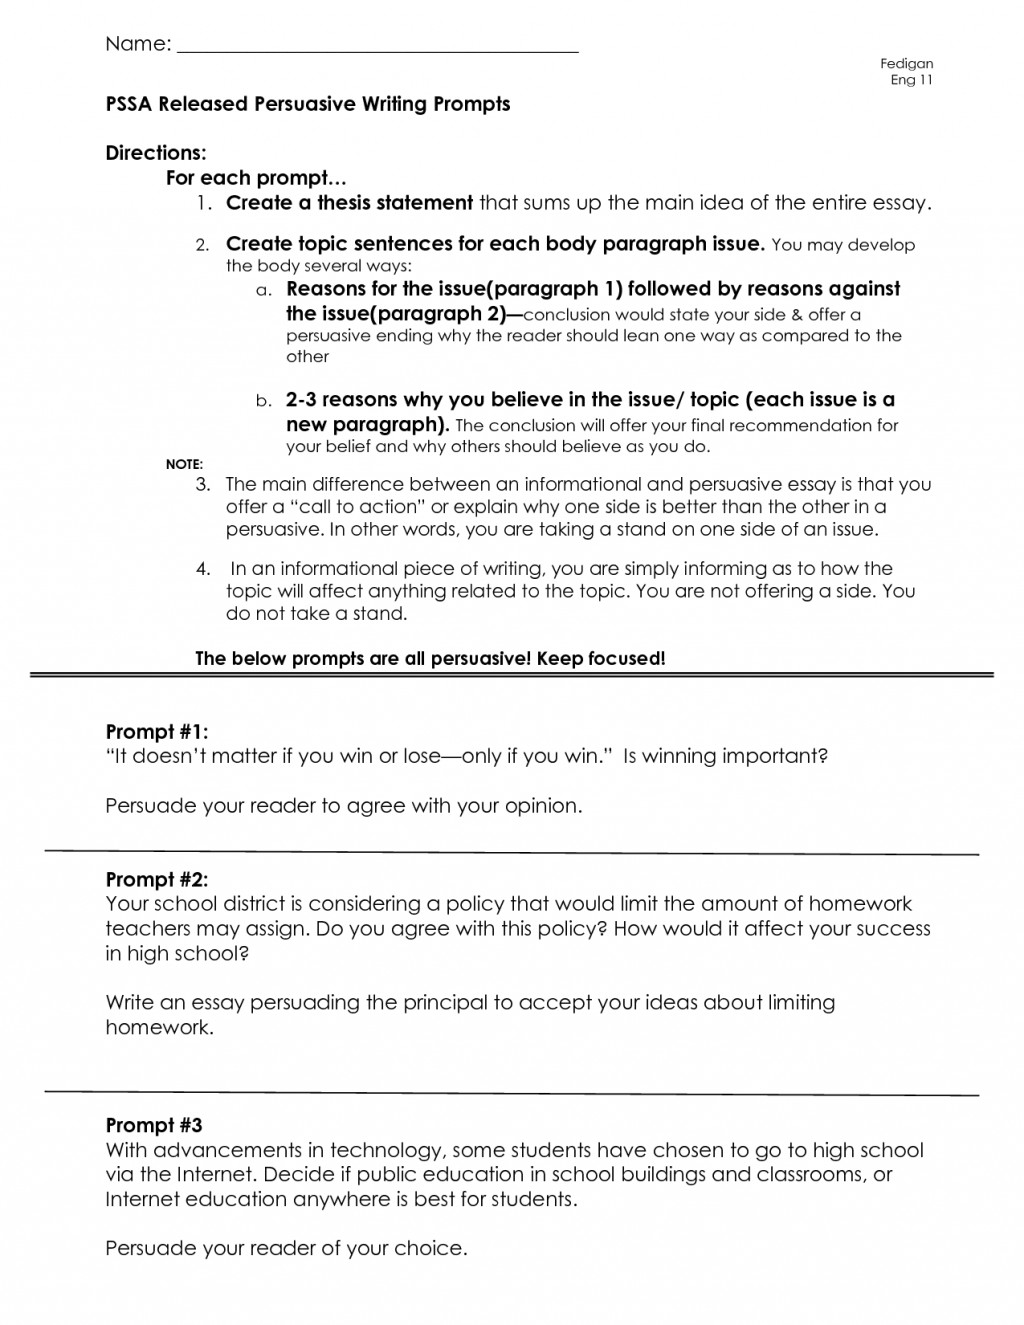 014 Persuasive Essay 6th Grade Writing Prompts 654695 Best Narrative College Topics For Lord Of The Flies Creative Large